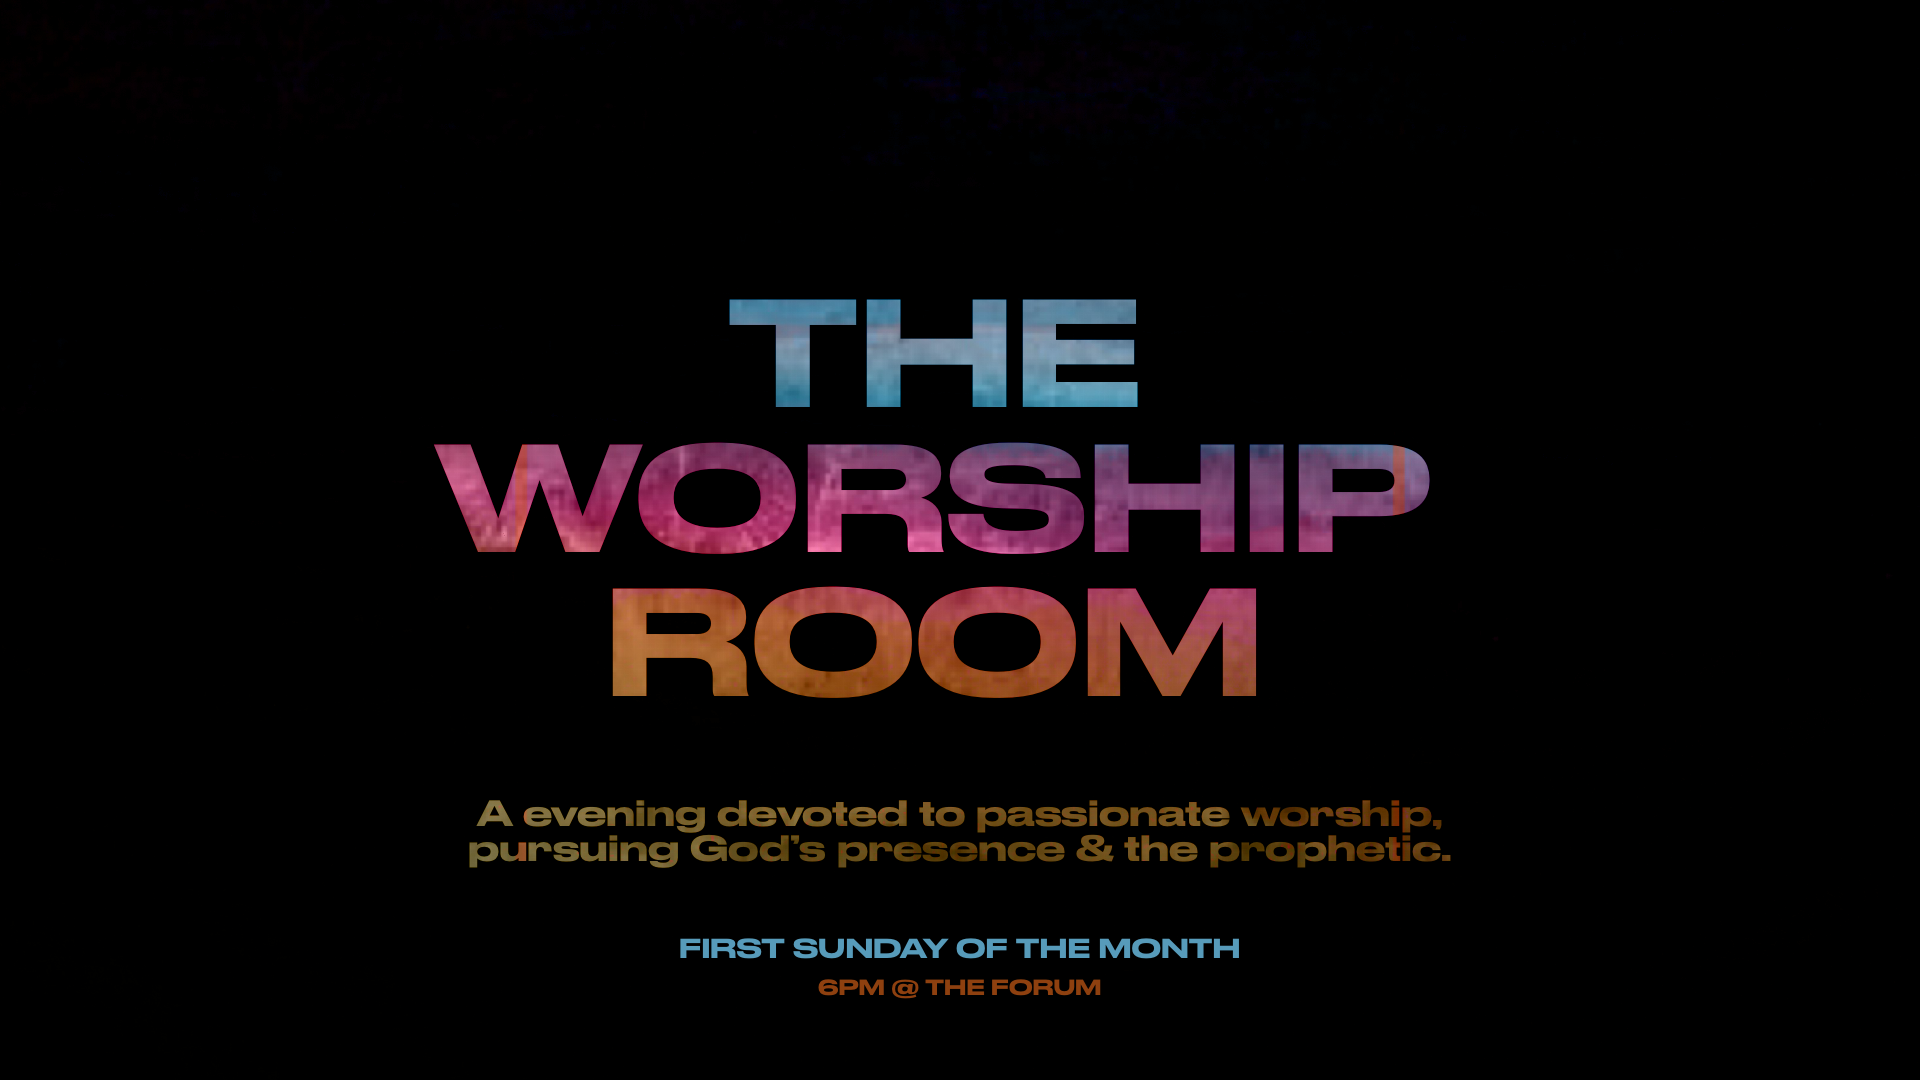 The Worship Room